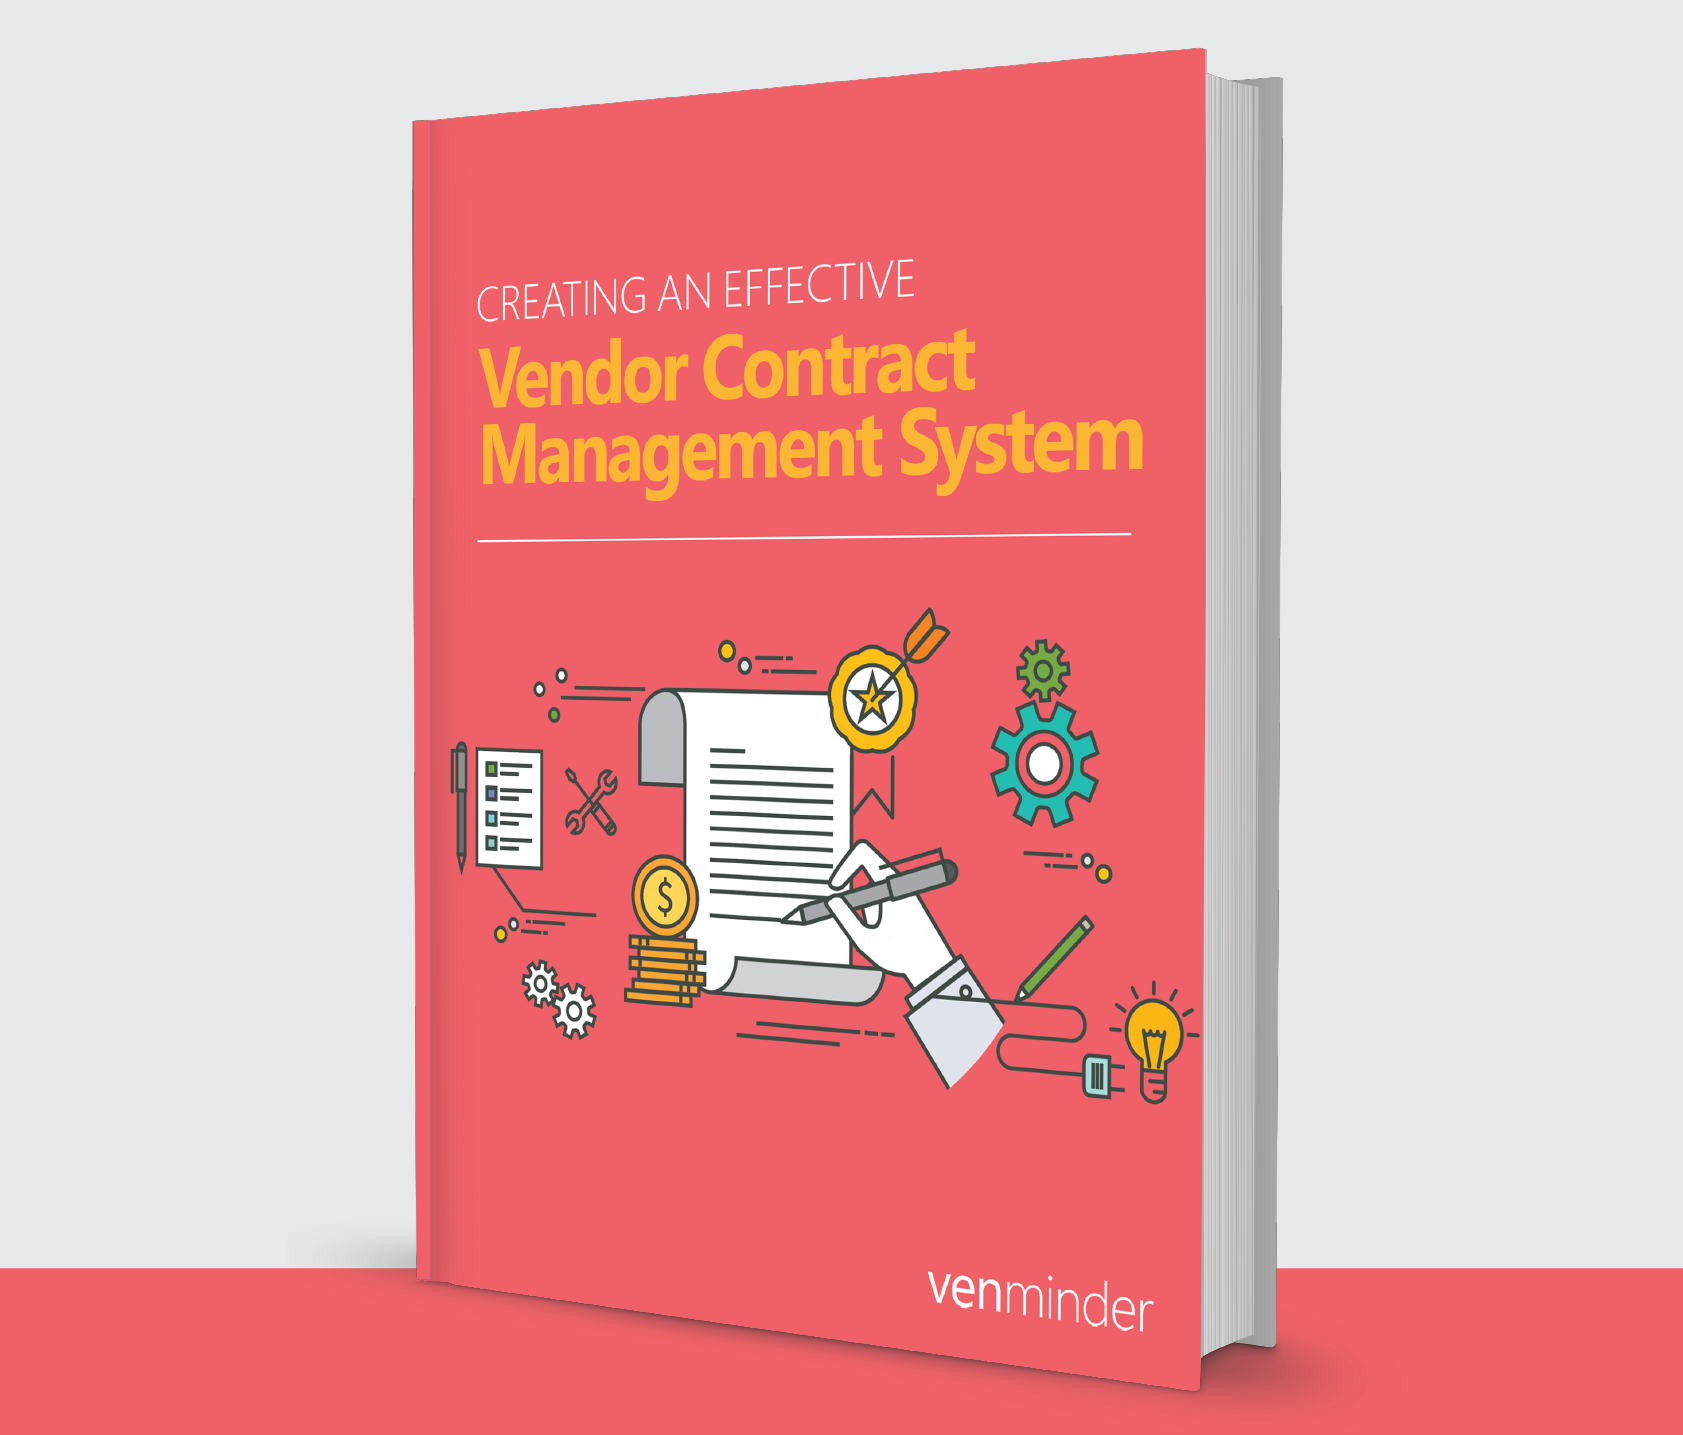 effective vendor management system